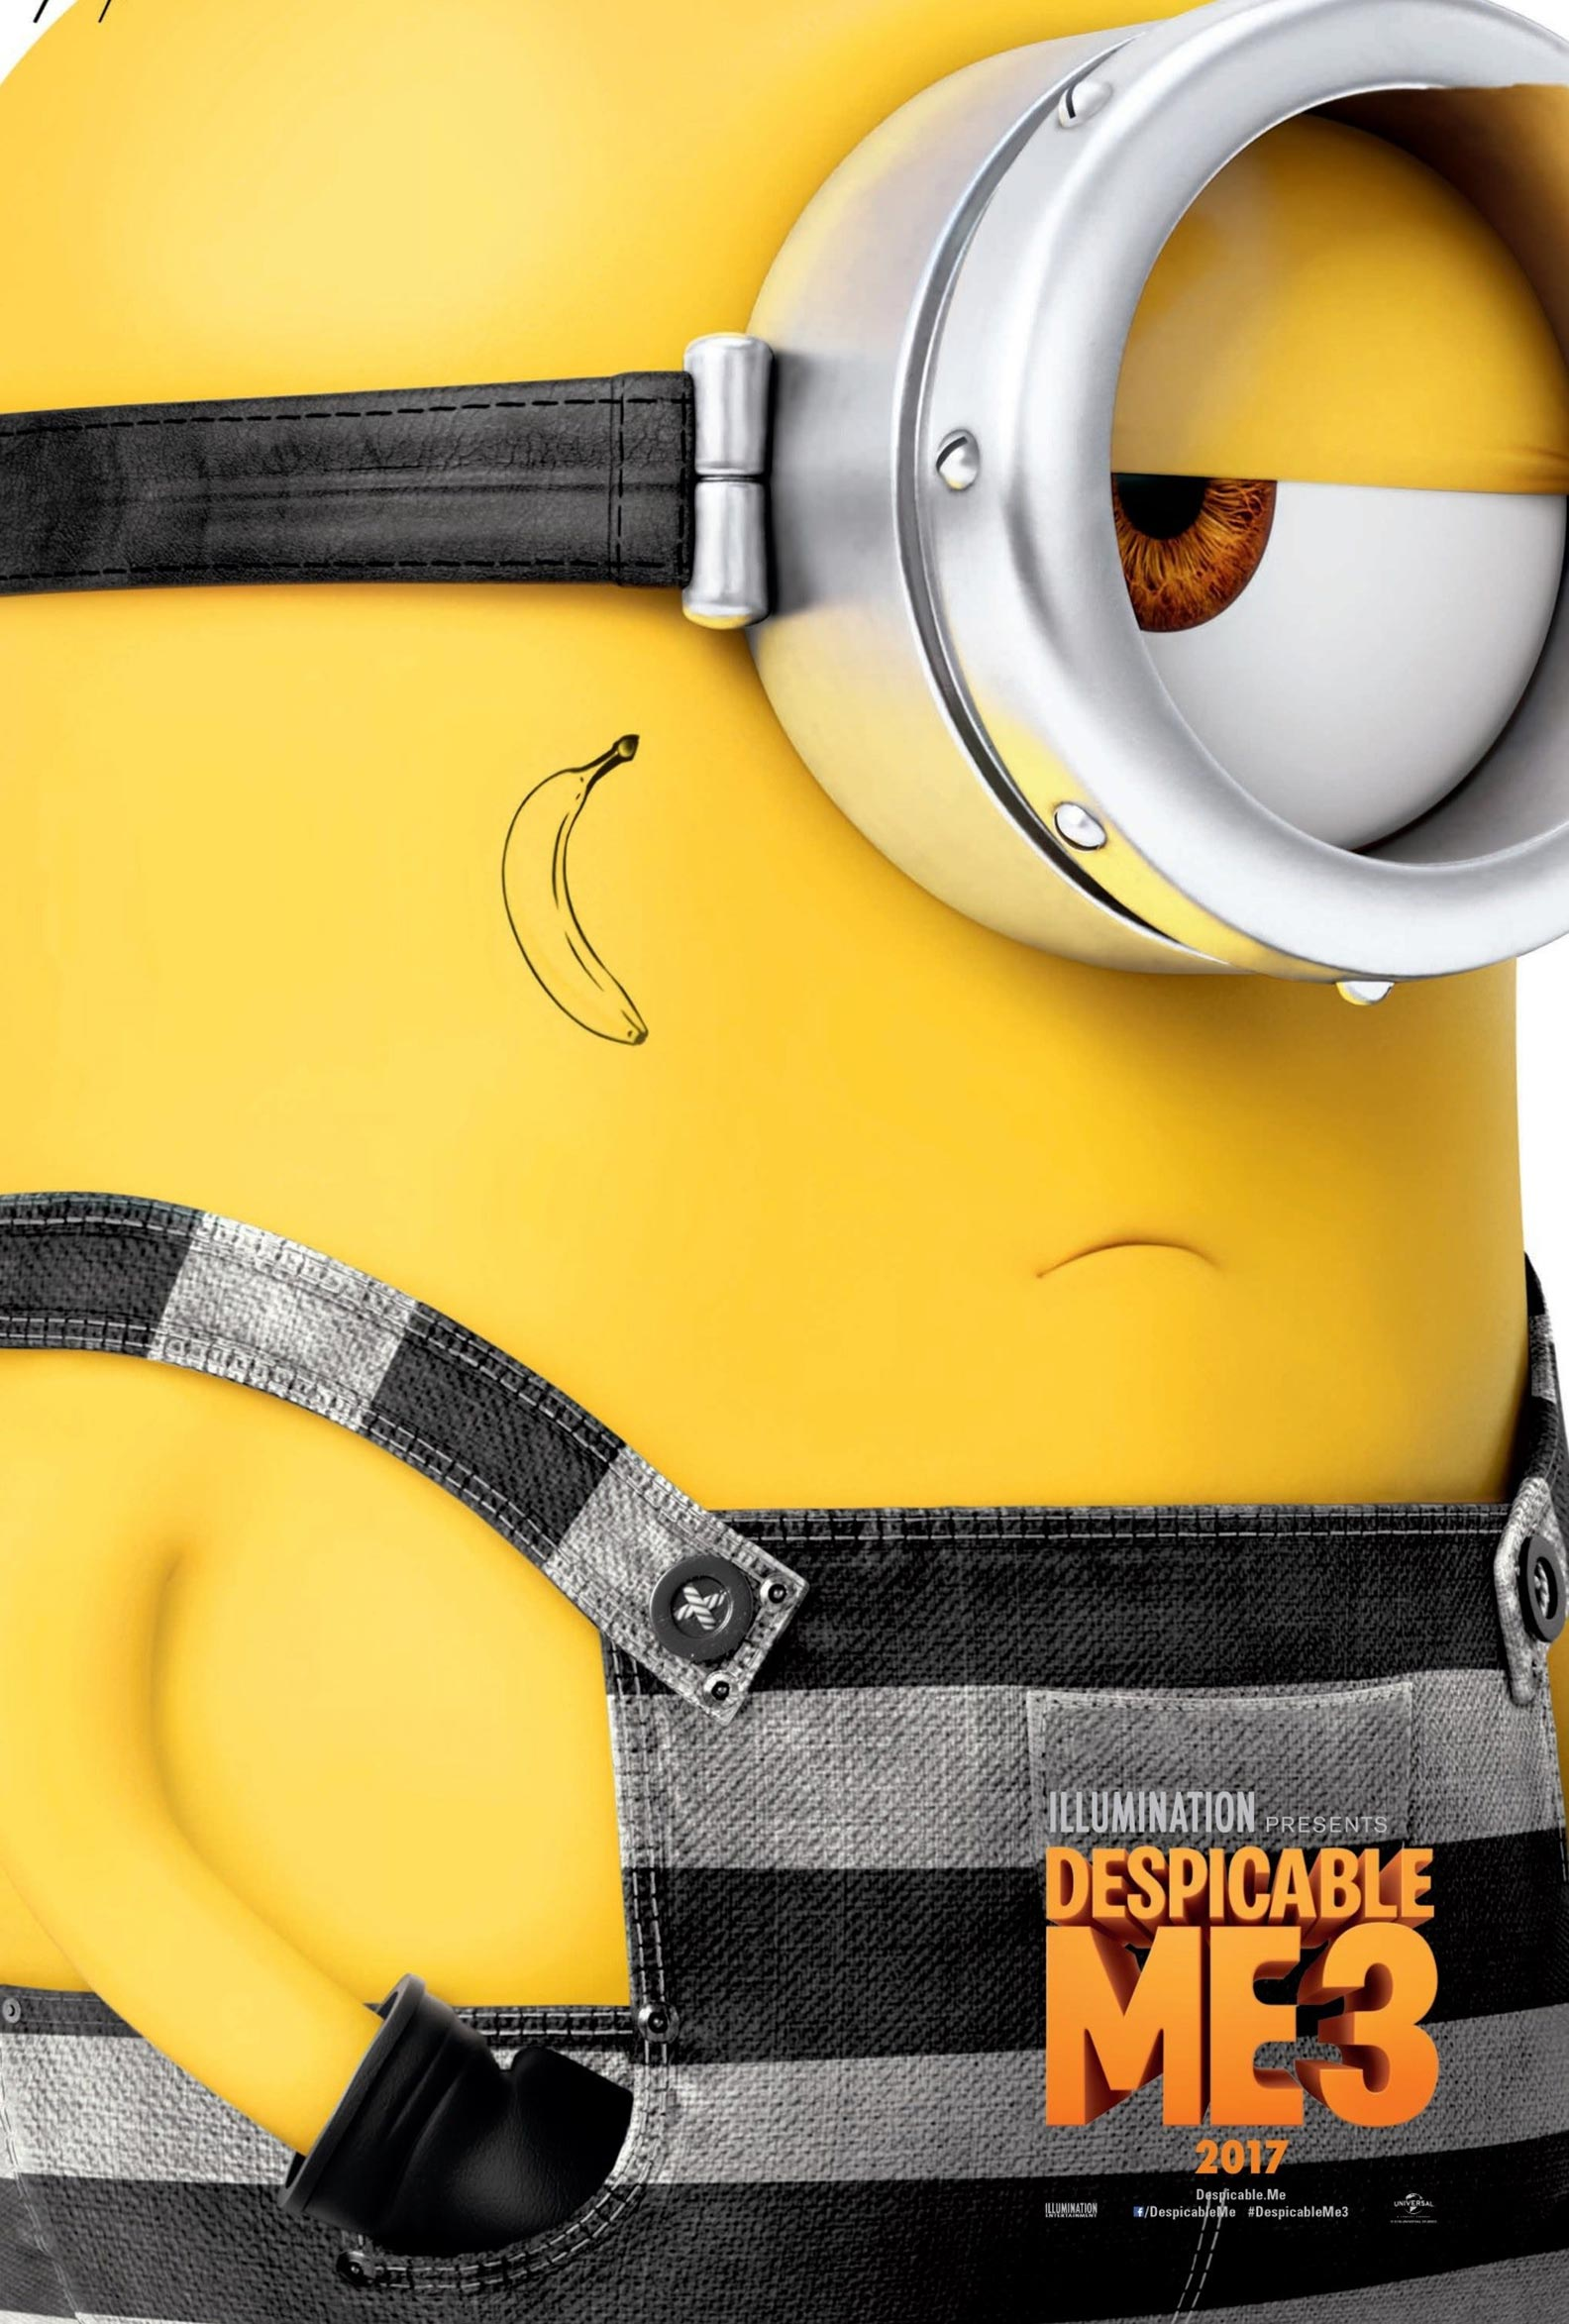 Despicable Me 3 (2017) Poster #1 - Trailer Addict